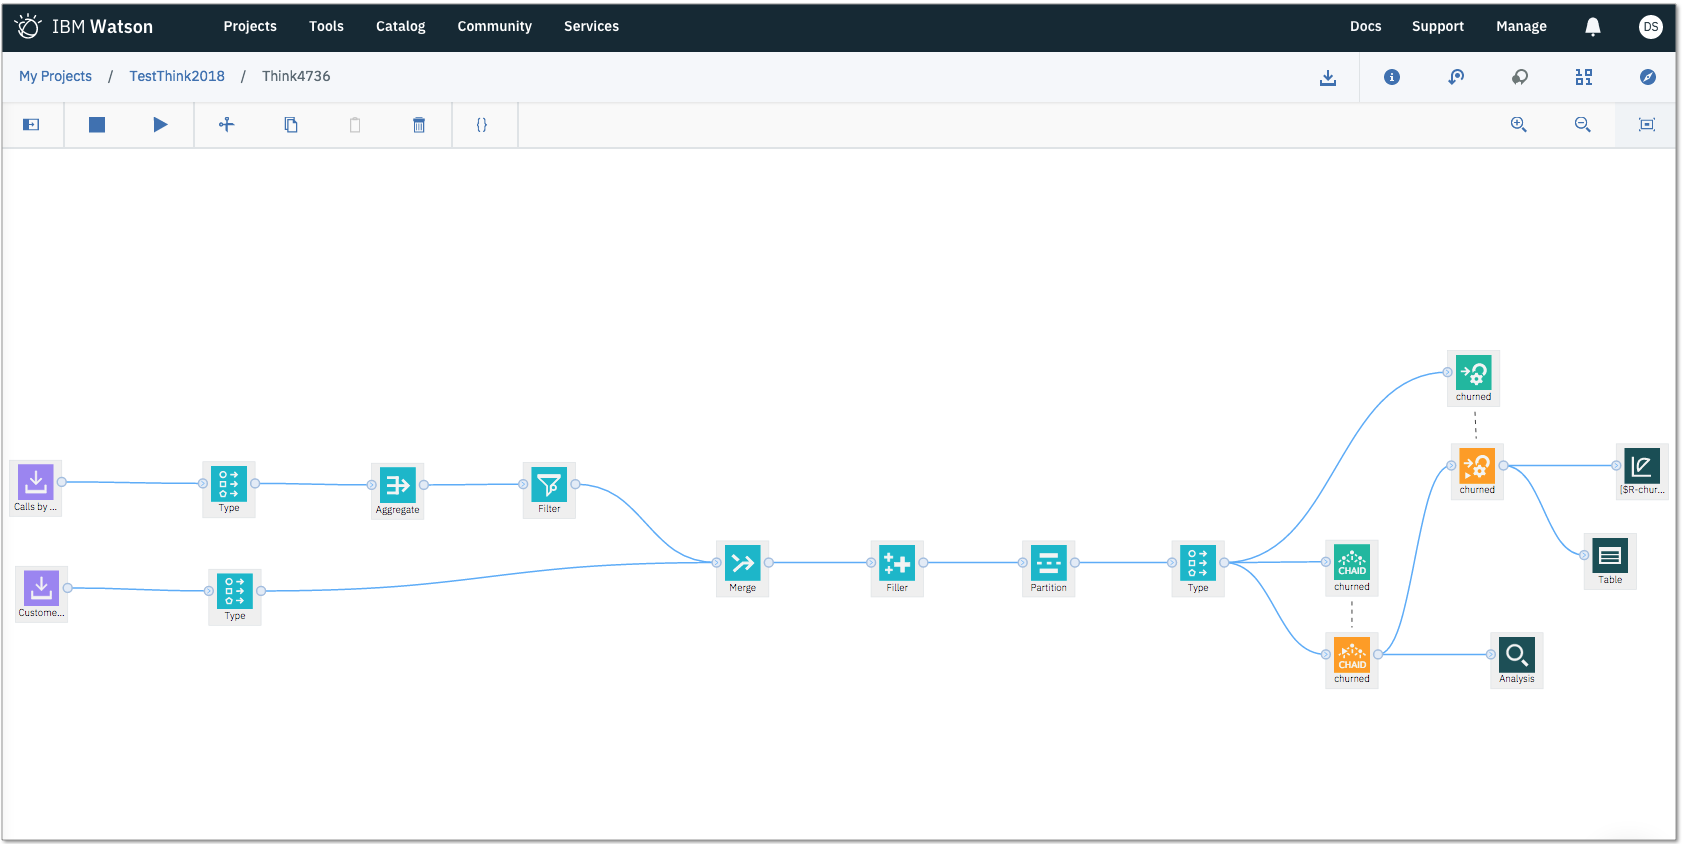 Predict Customer Churn by Building and Deploying Models Using Watson